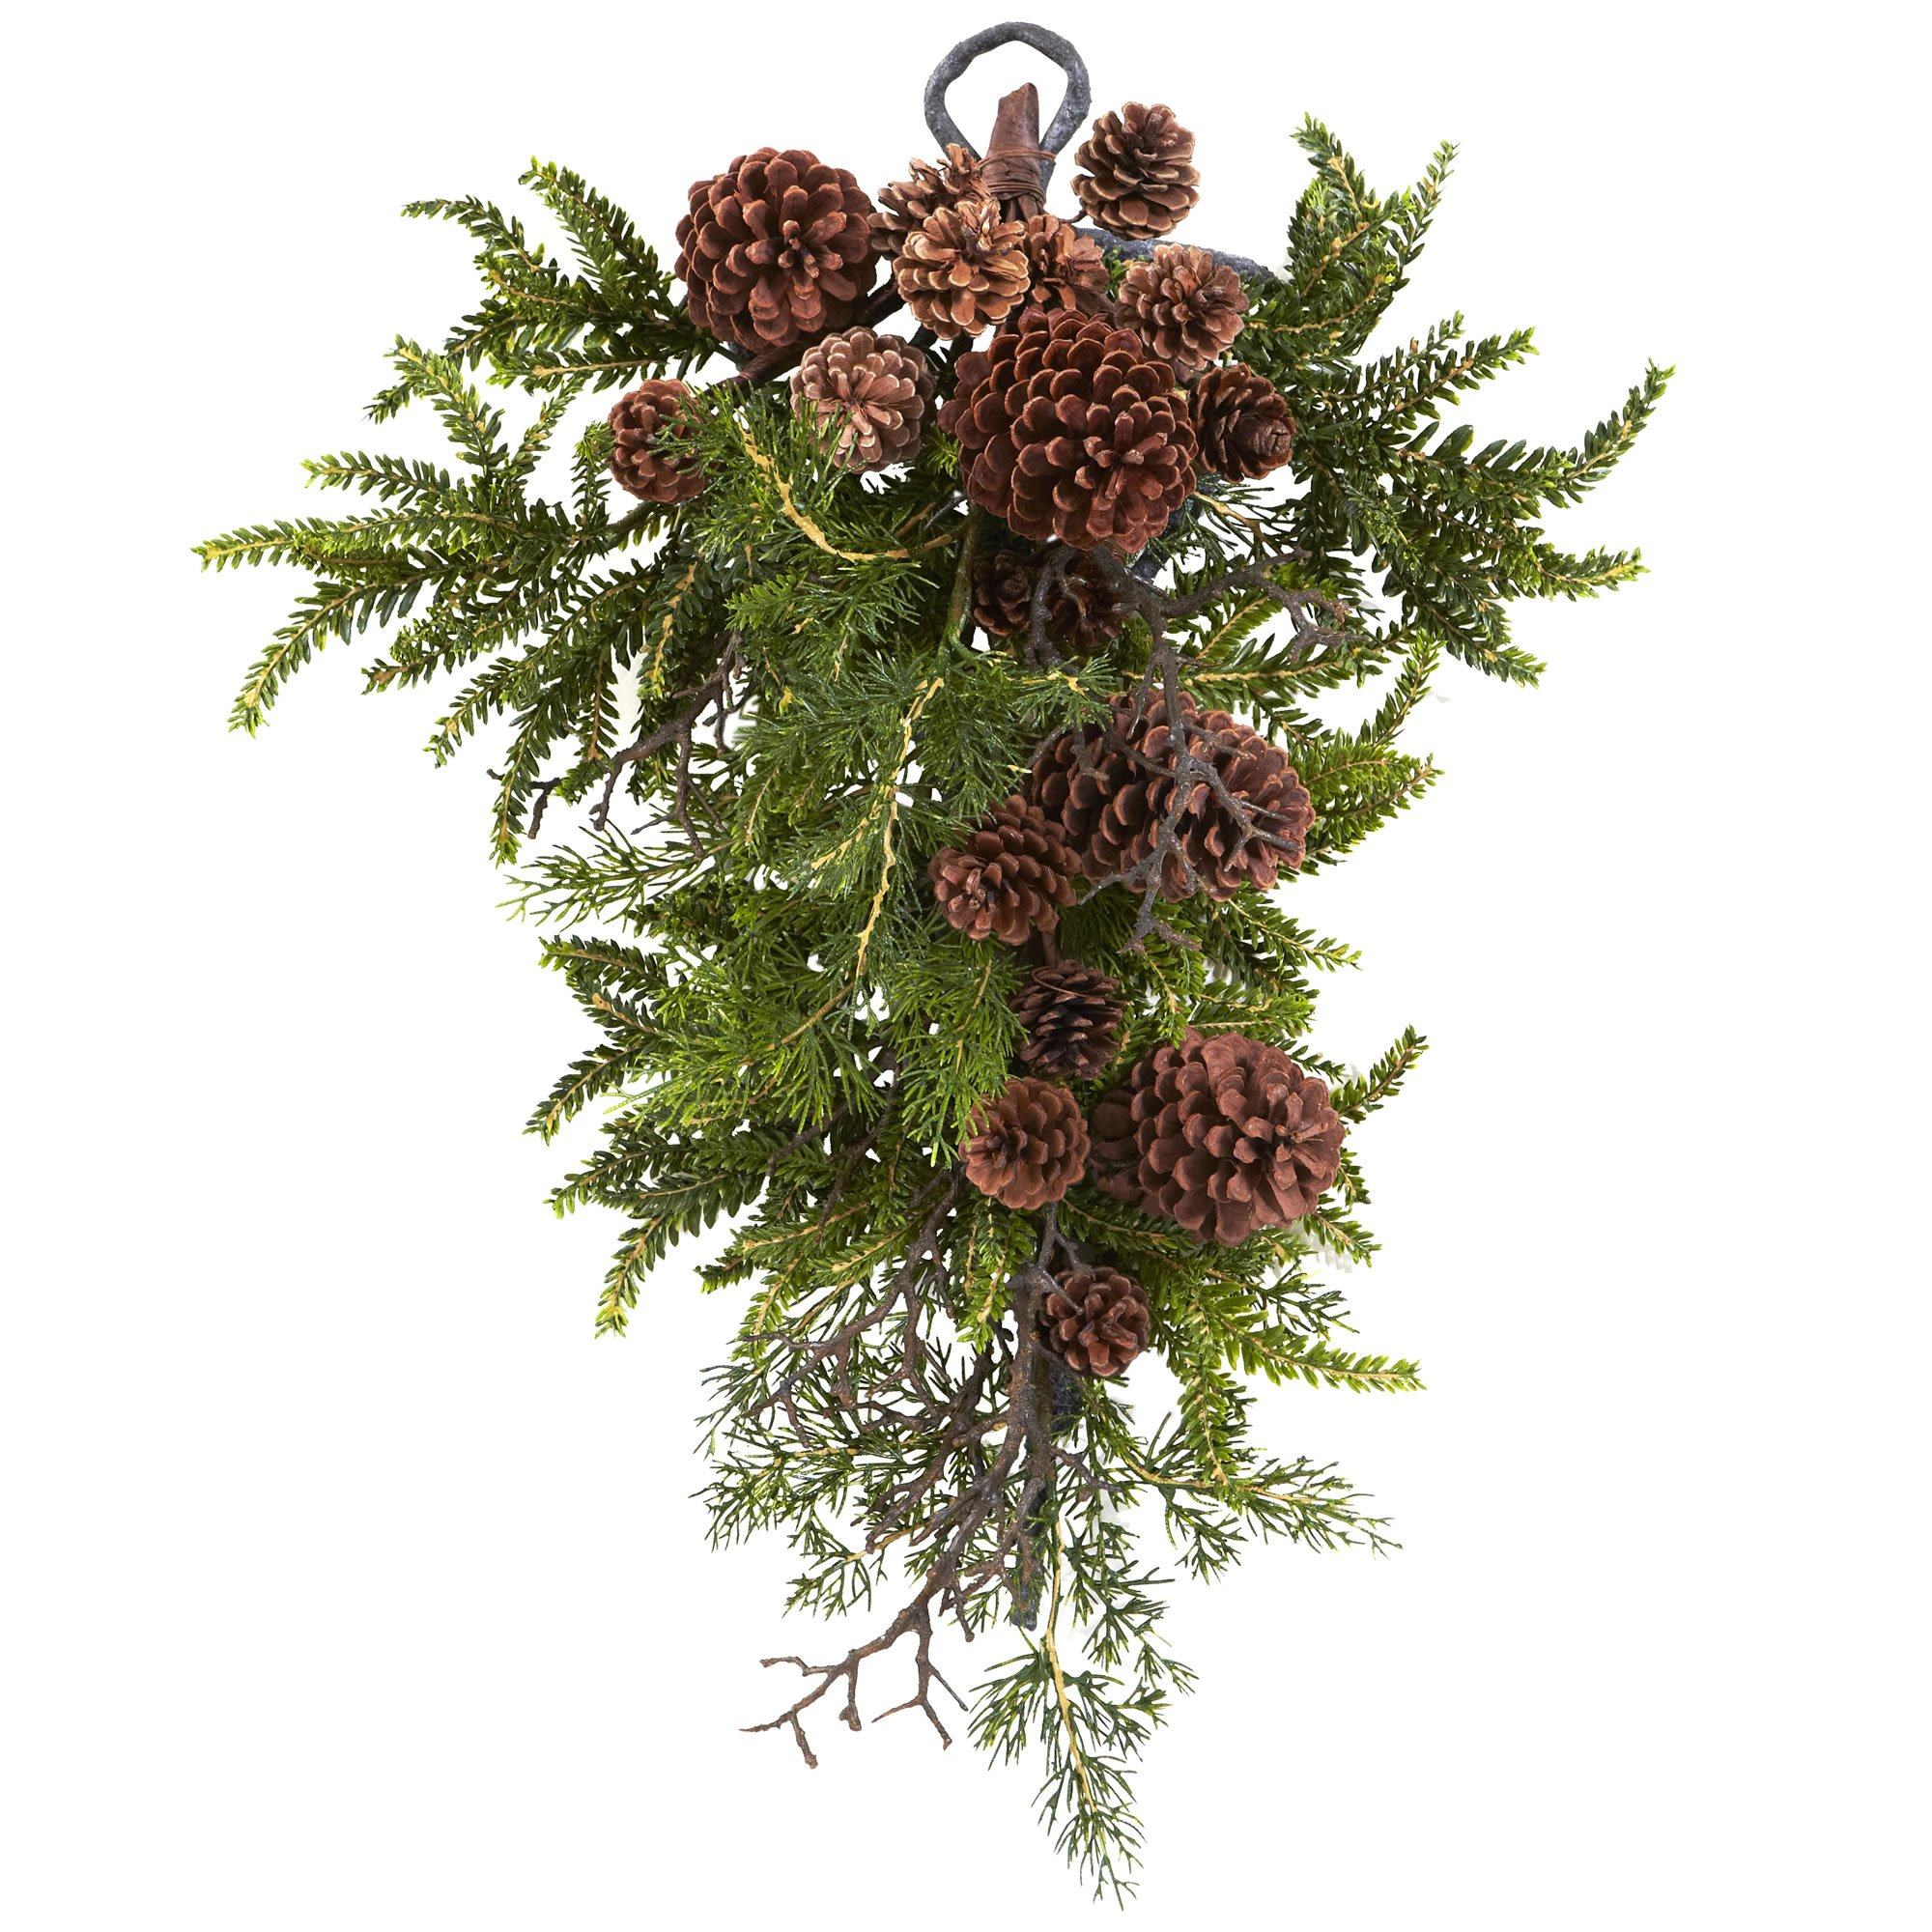 Nearly Natural 4944 Pine and Pine Cone Teardrop, 26-Inch, Green/Brown by Nearly Natural